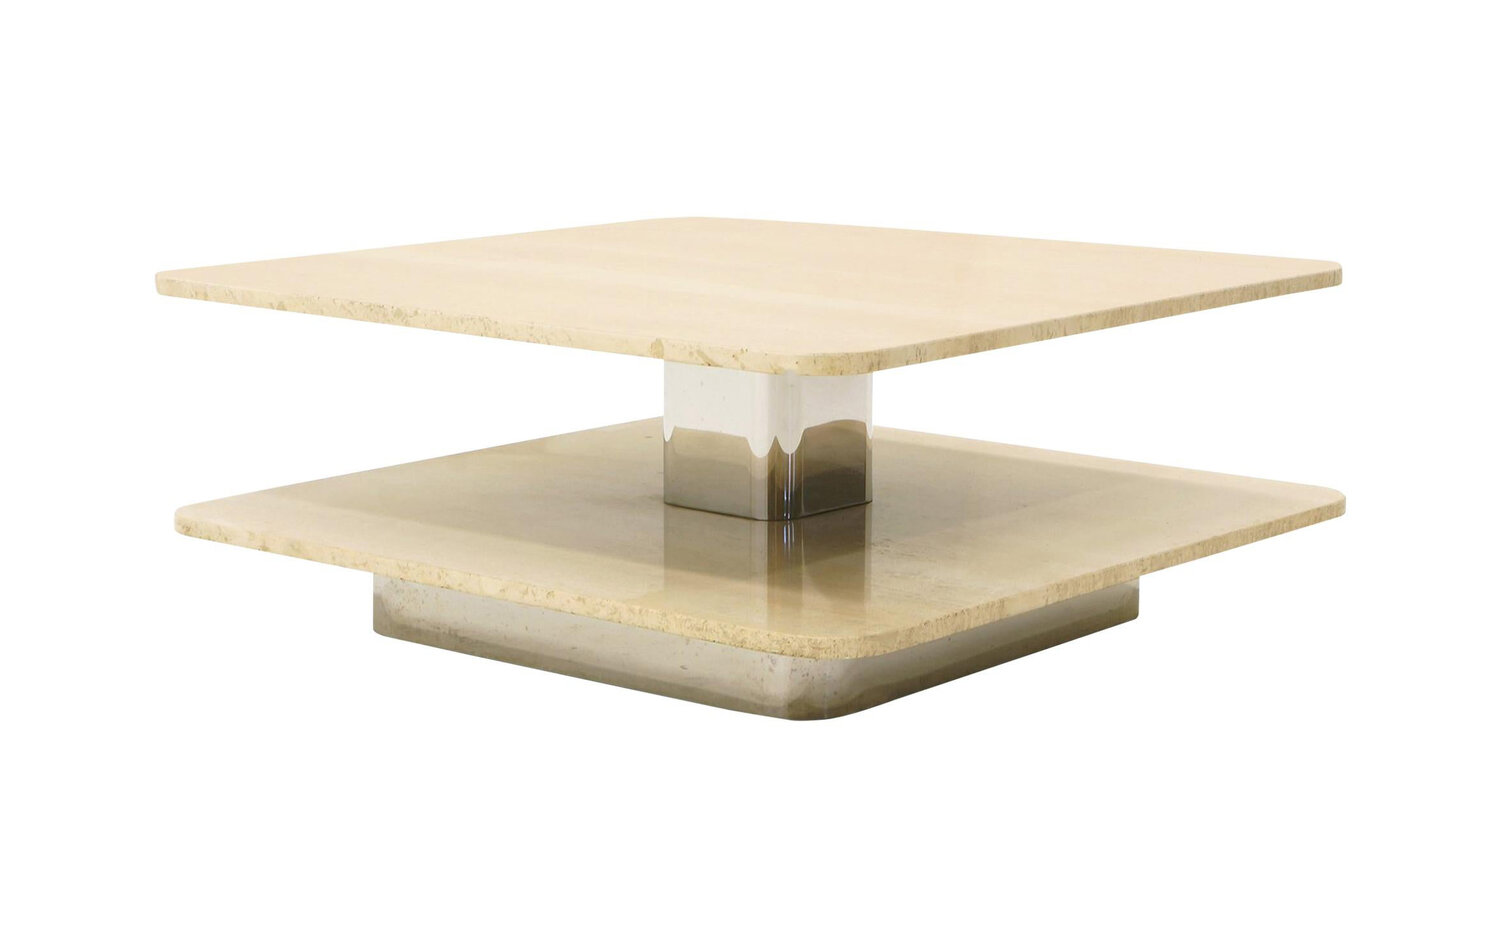 Coffee Table In The Style Of Harvey Probber Two Tier Square Travertine Tops Retro Inferno